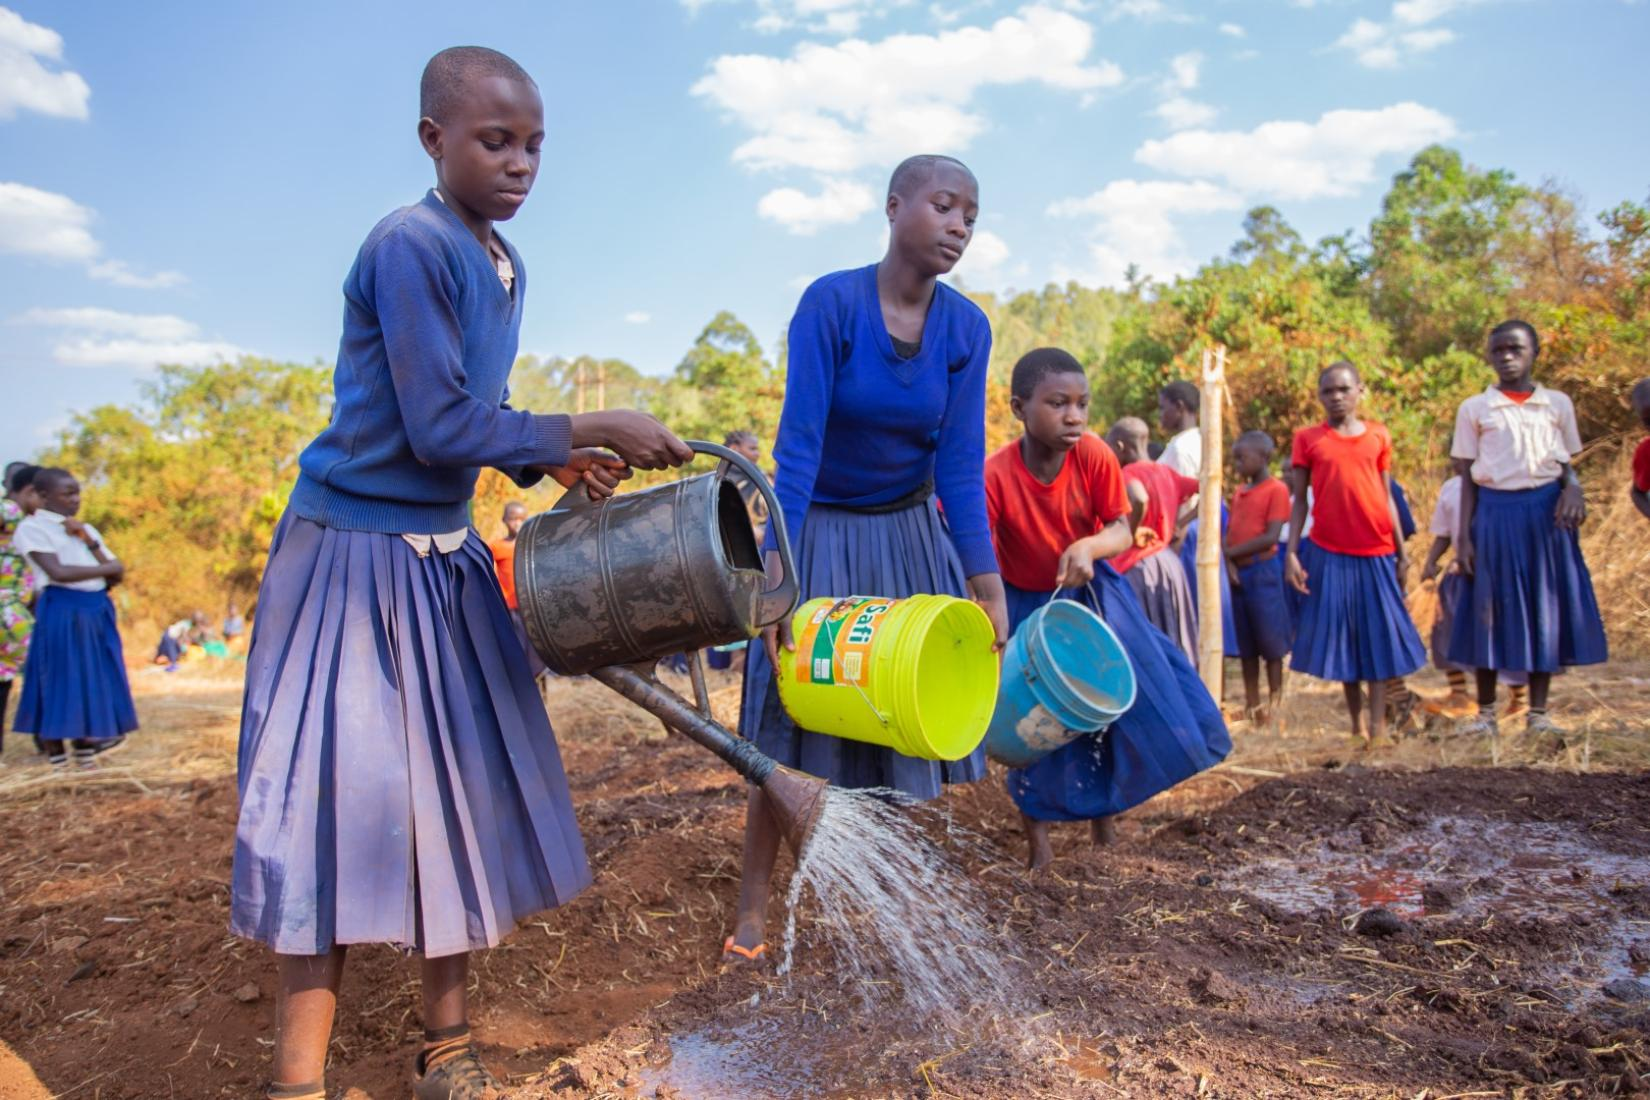 Pupils watering during an Agriculture class